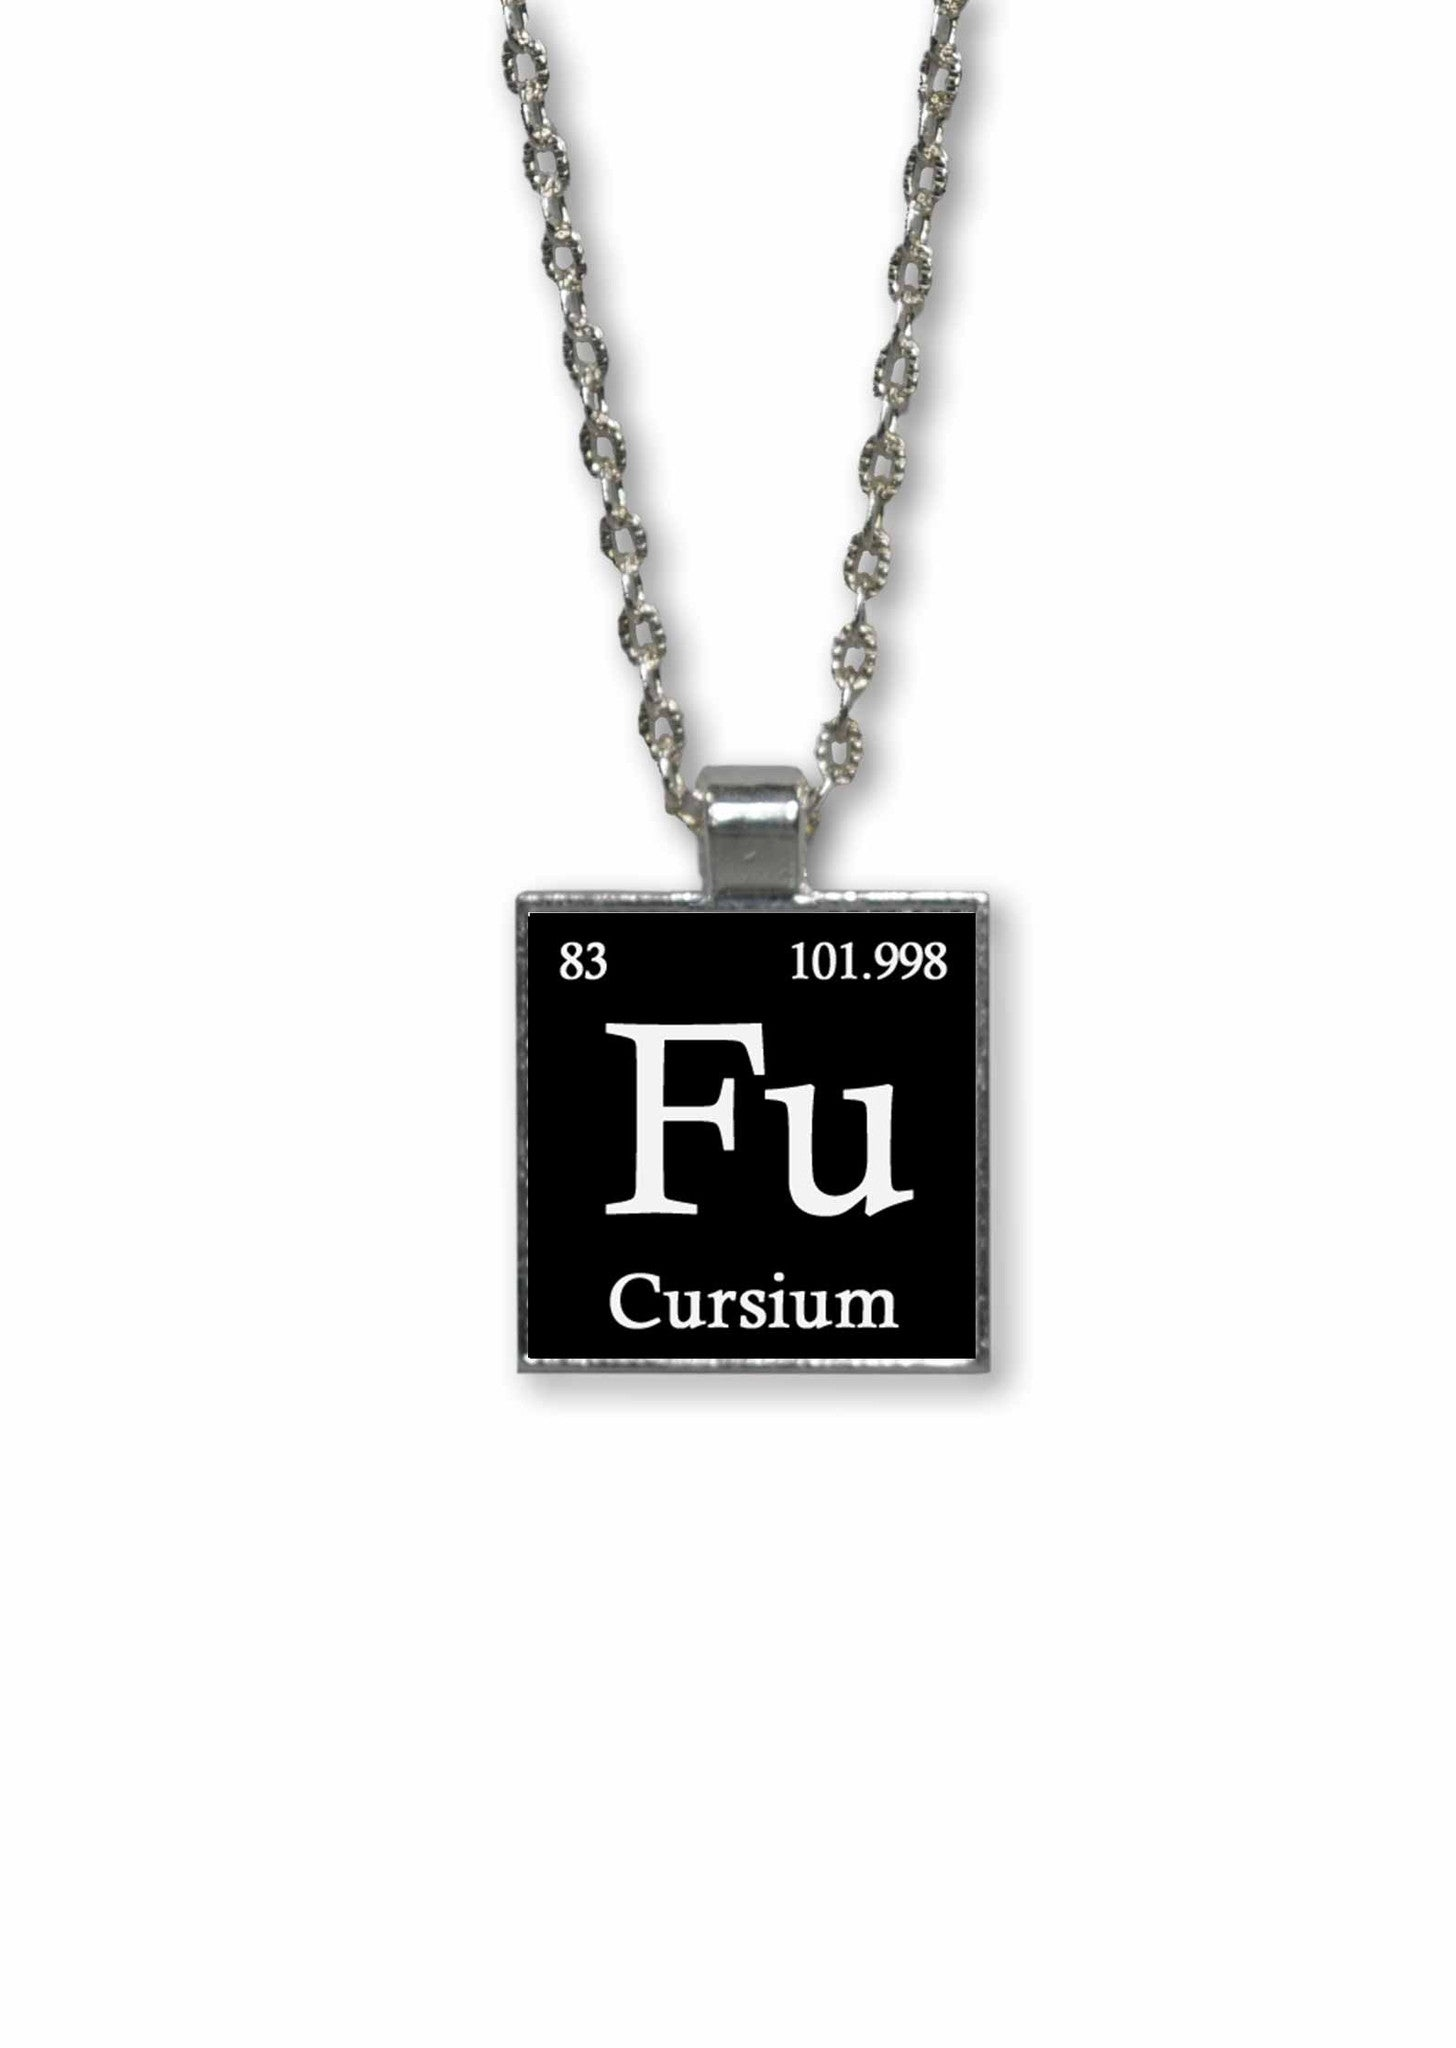 Funny made up periodic table elements 1 inch square pendant funny made up periodic table elements pendant necklace fu cursium urtaz Image collections